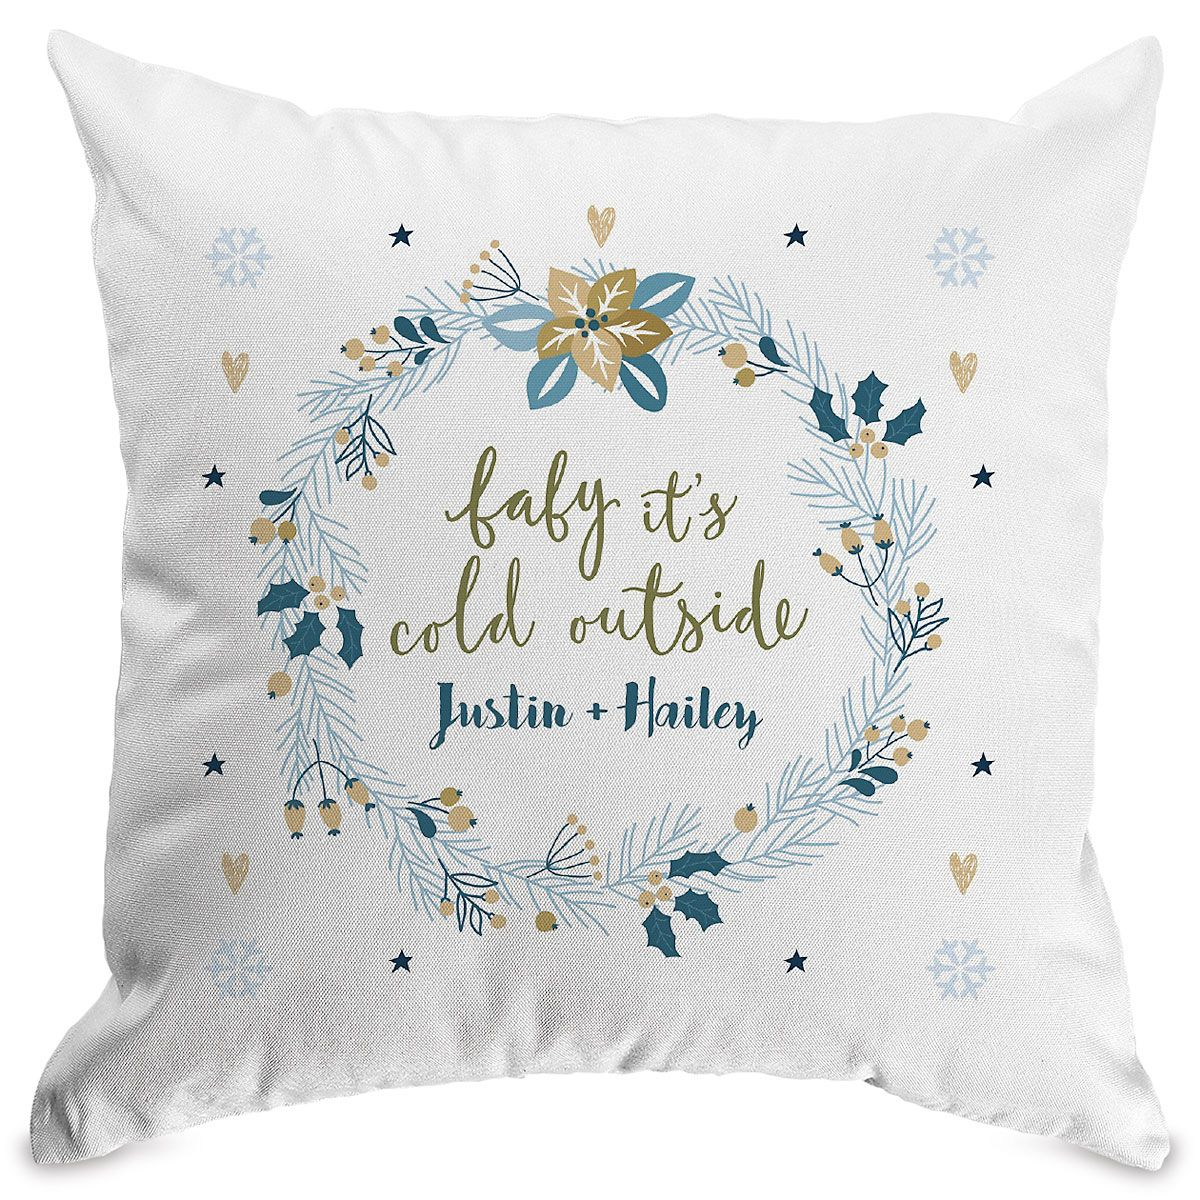 Baby It's Cold Outside Customized White Pillow